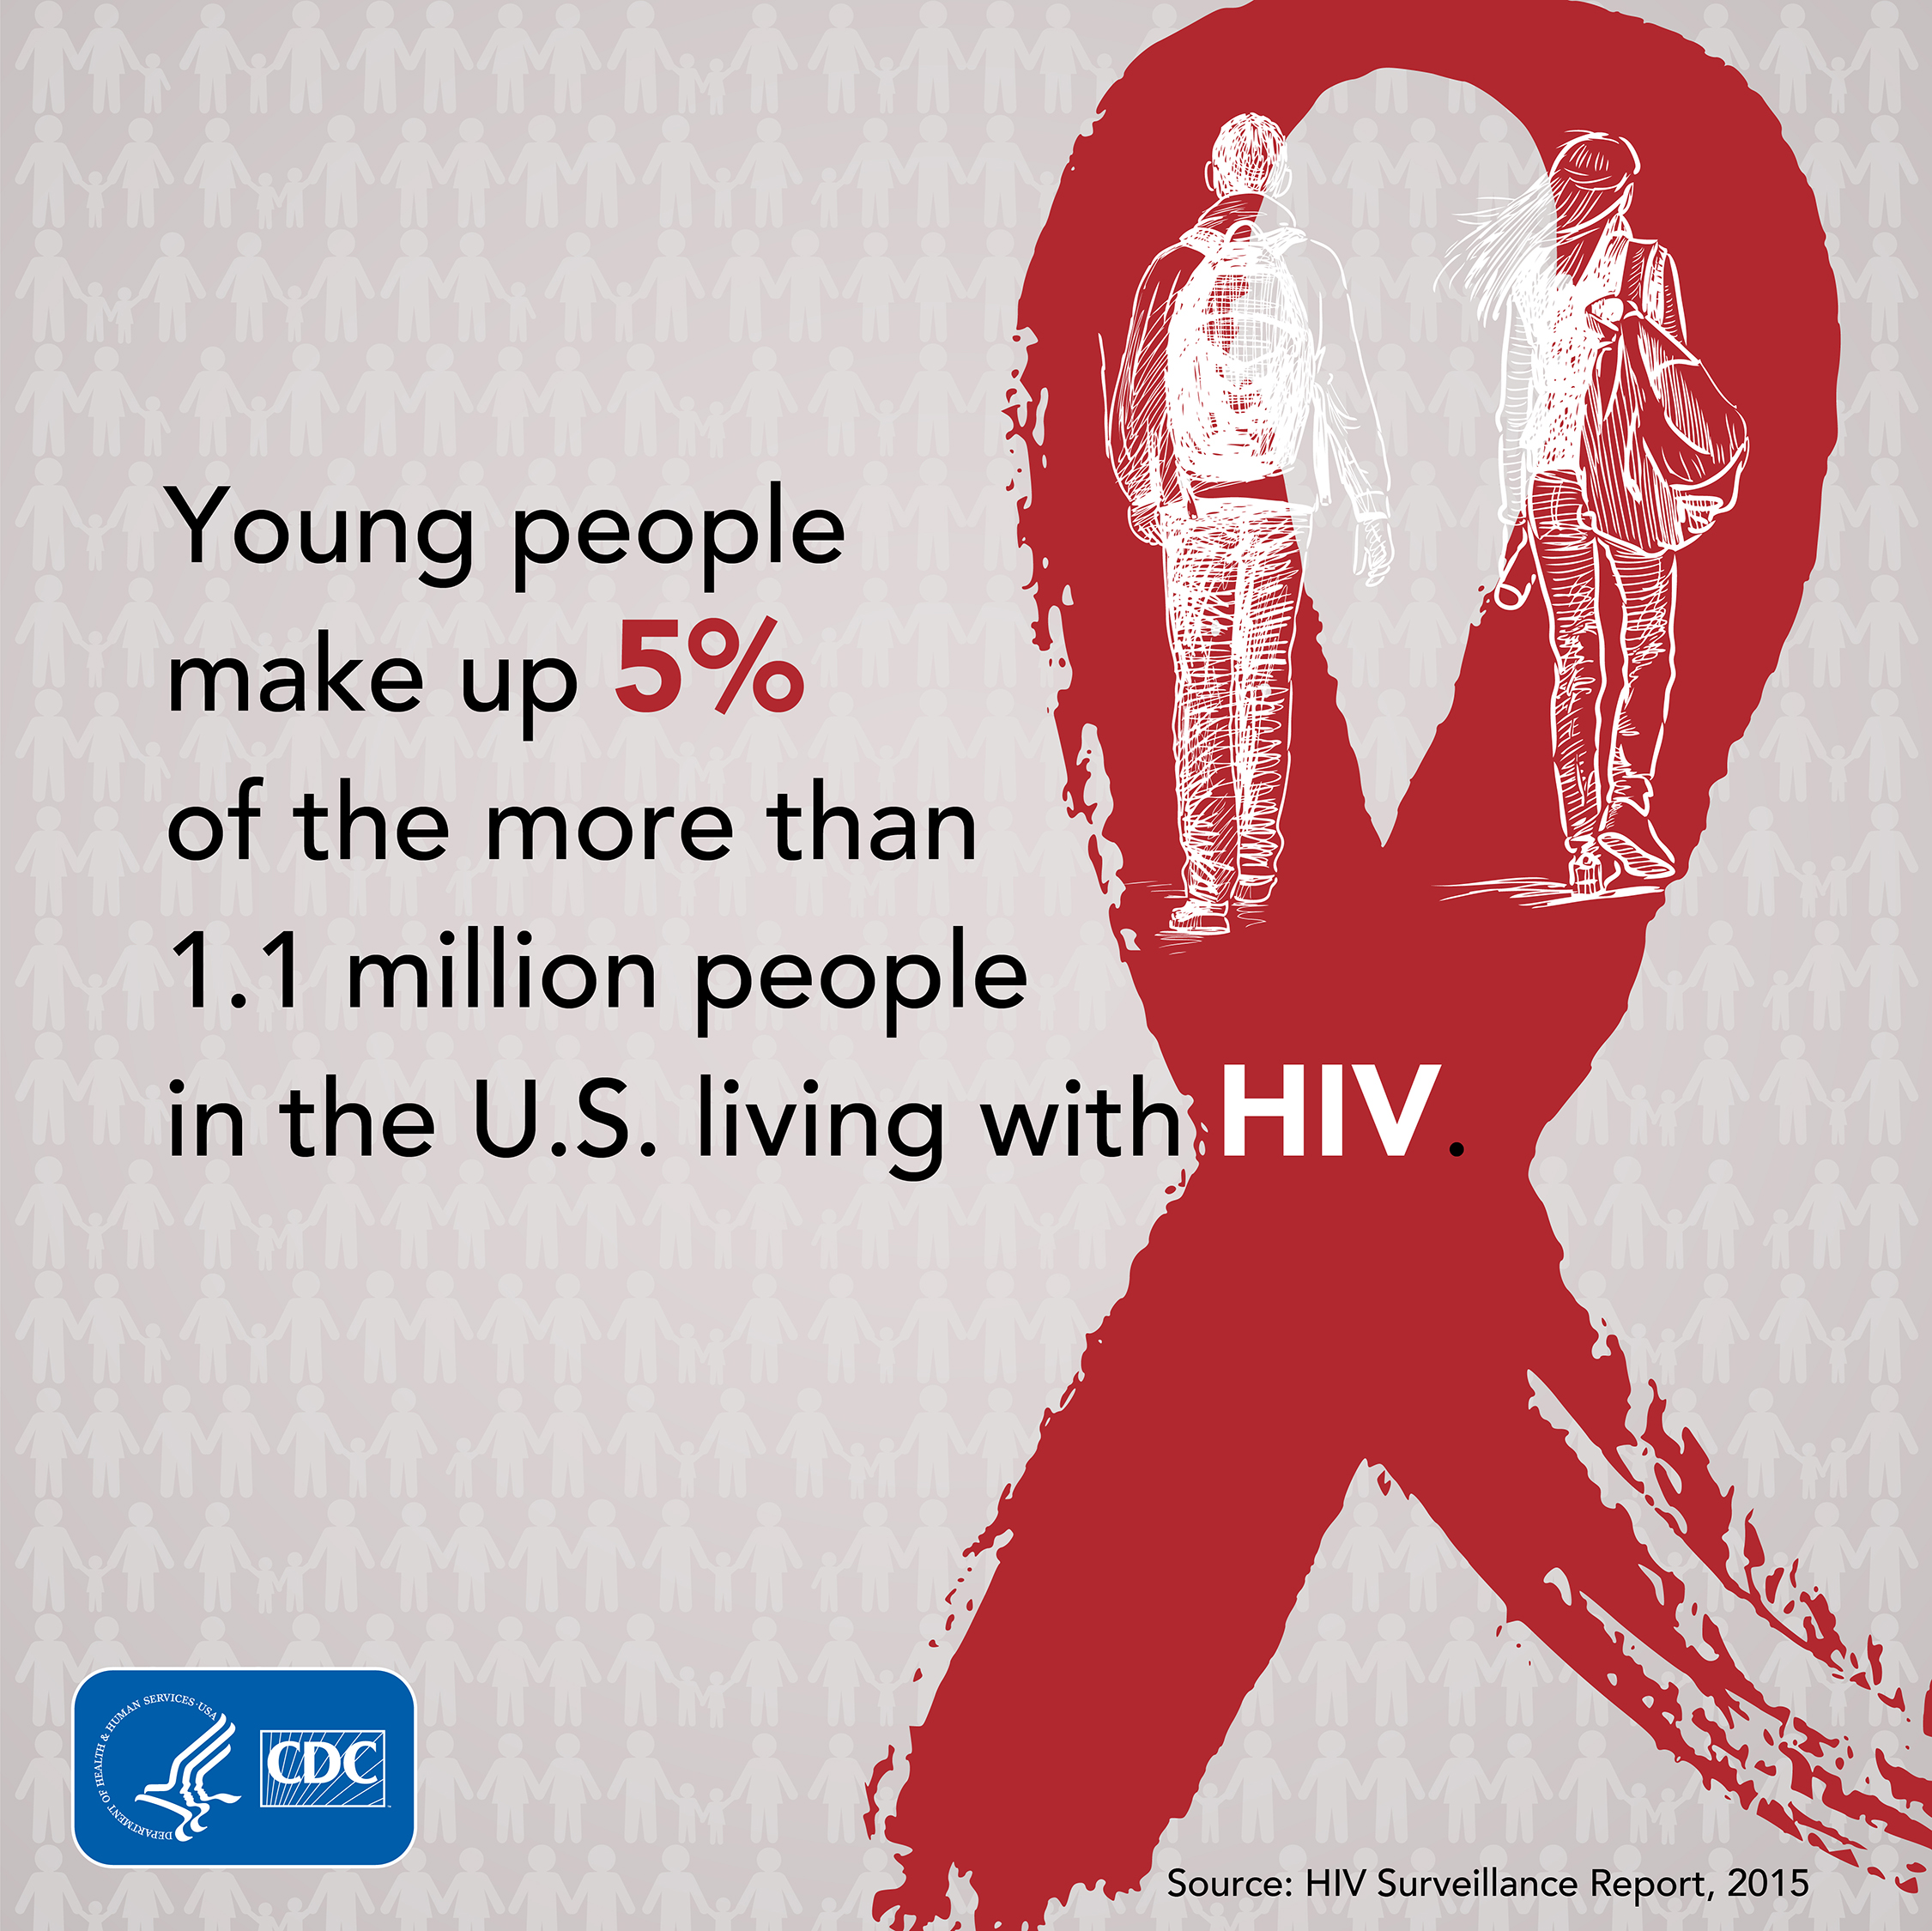 Infographic: Young people make up 5% of more than 1.1 million people in the US living with HIV. Source: HIV Surveillance Report, 2015